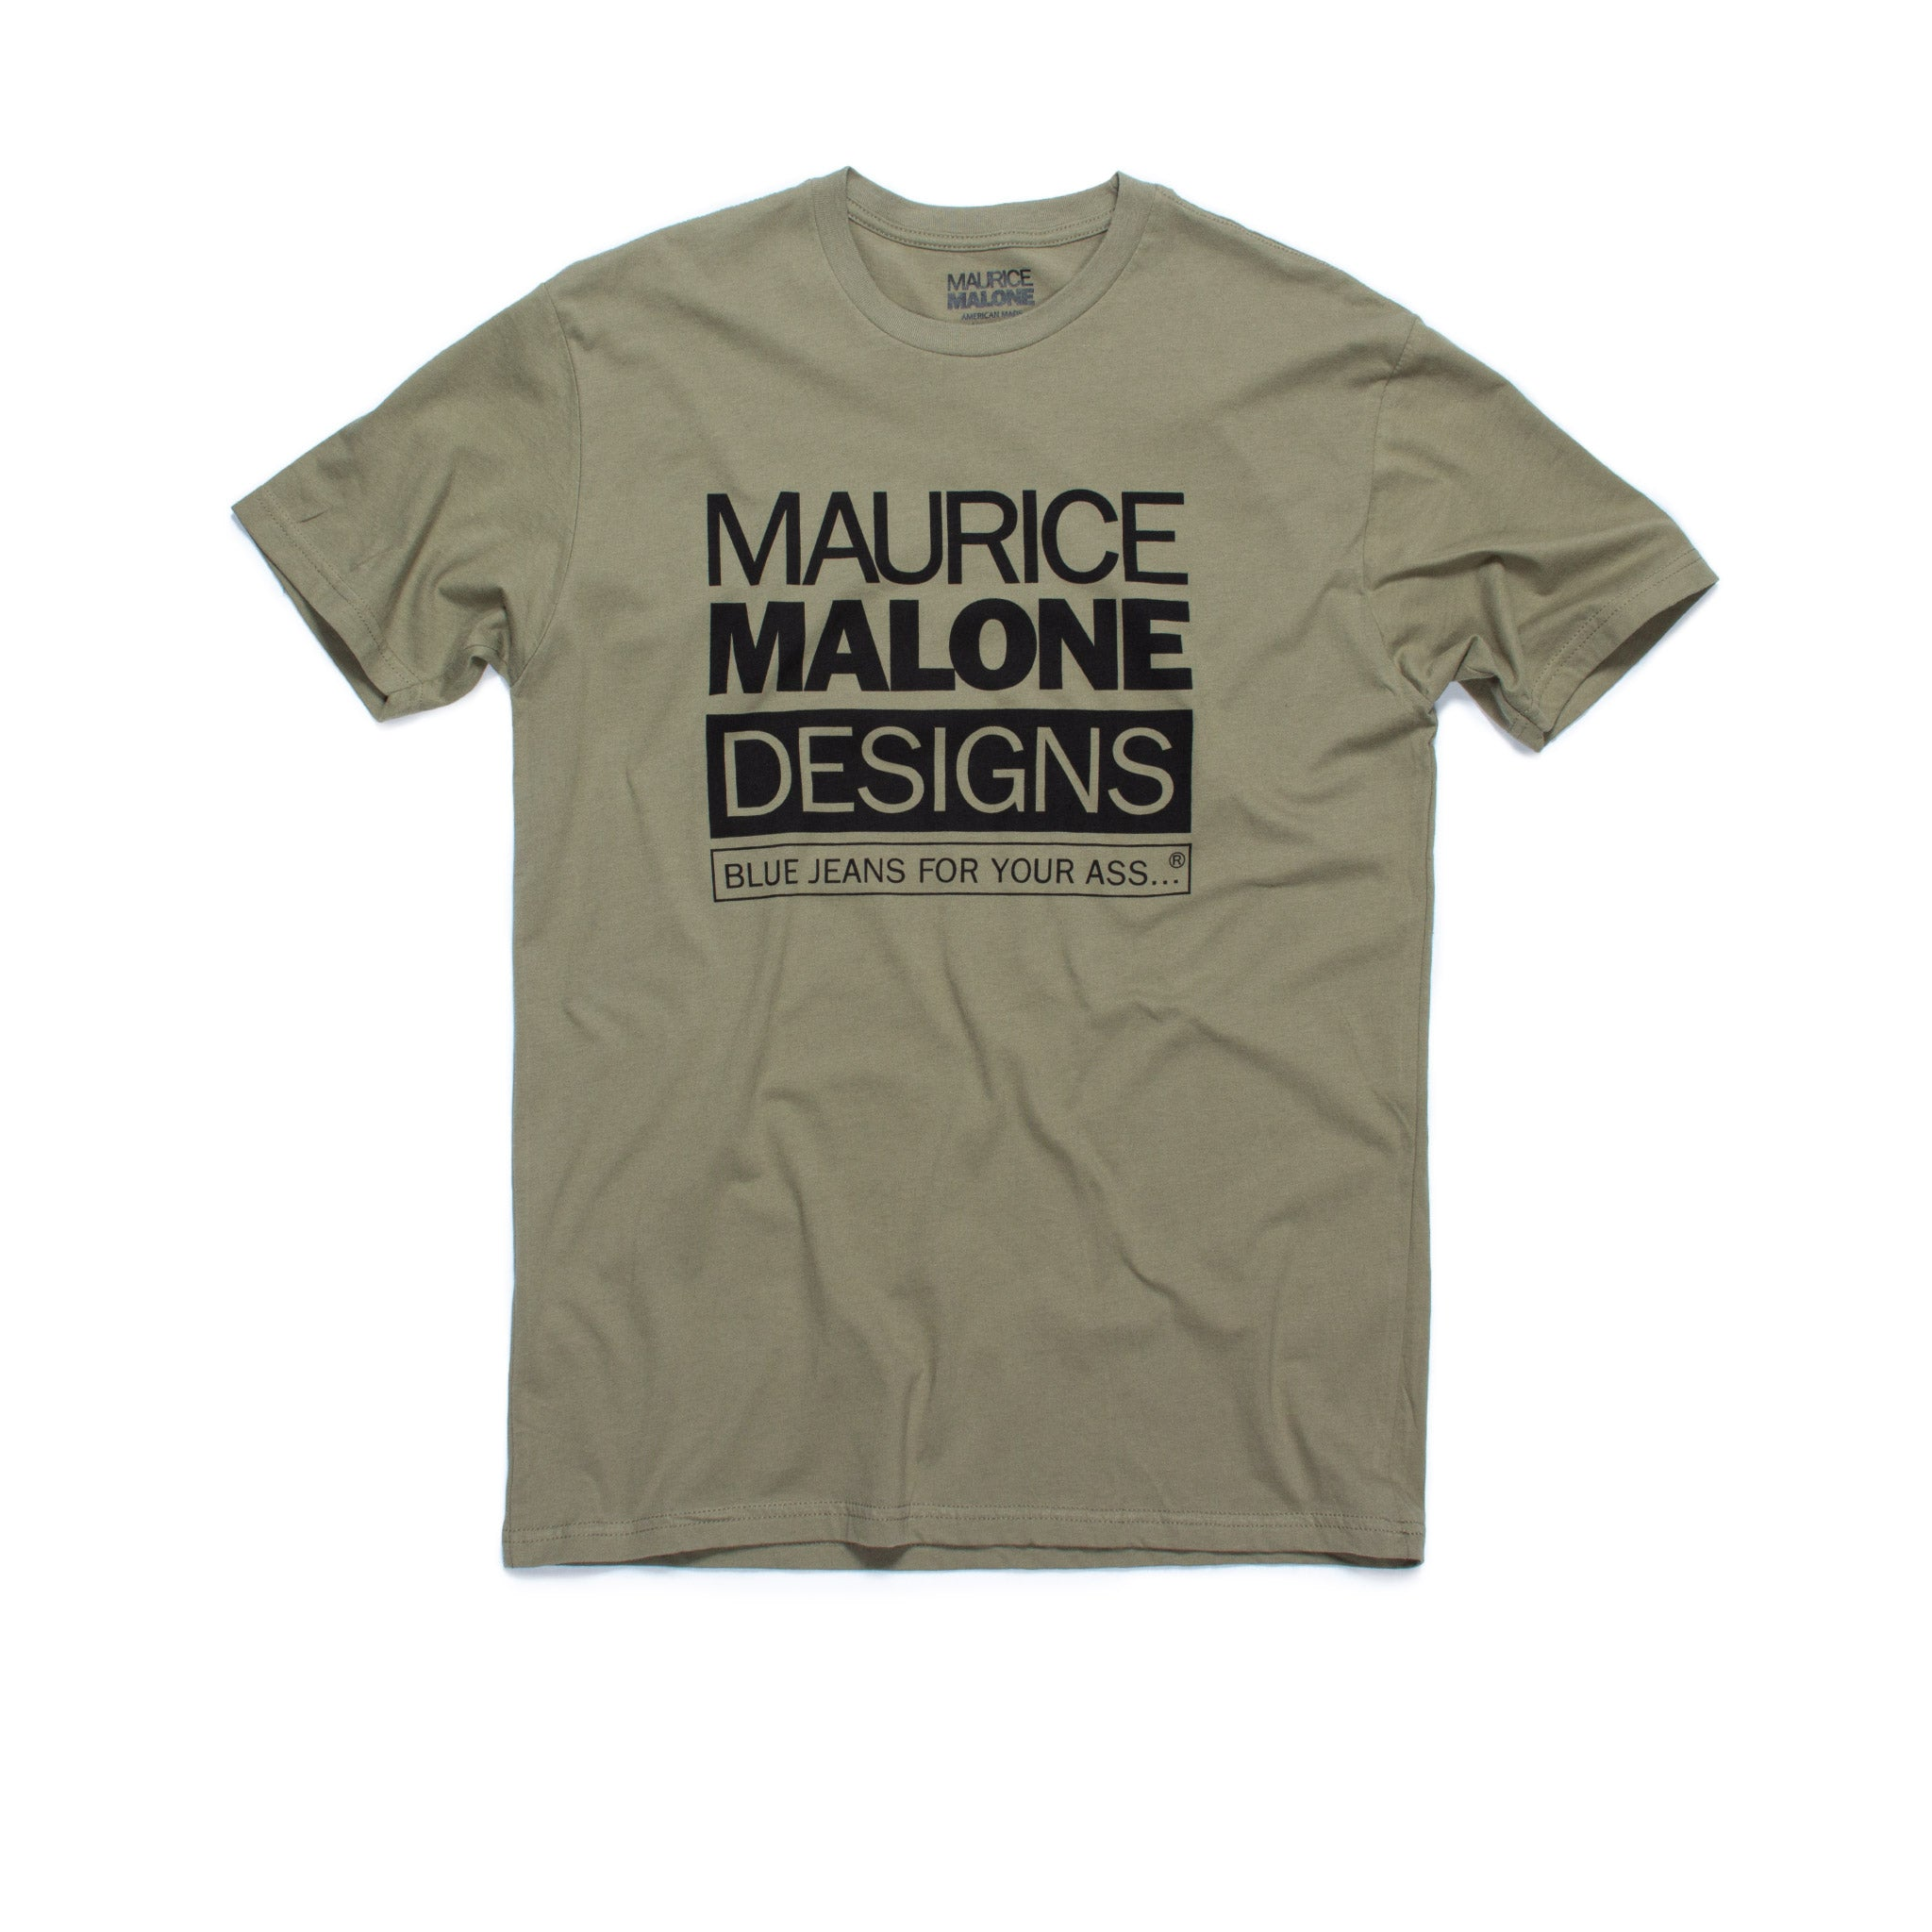 Olive Green iconic 90s designer streetwear brand t-shirt by Maurice Malone